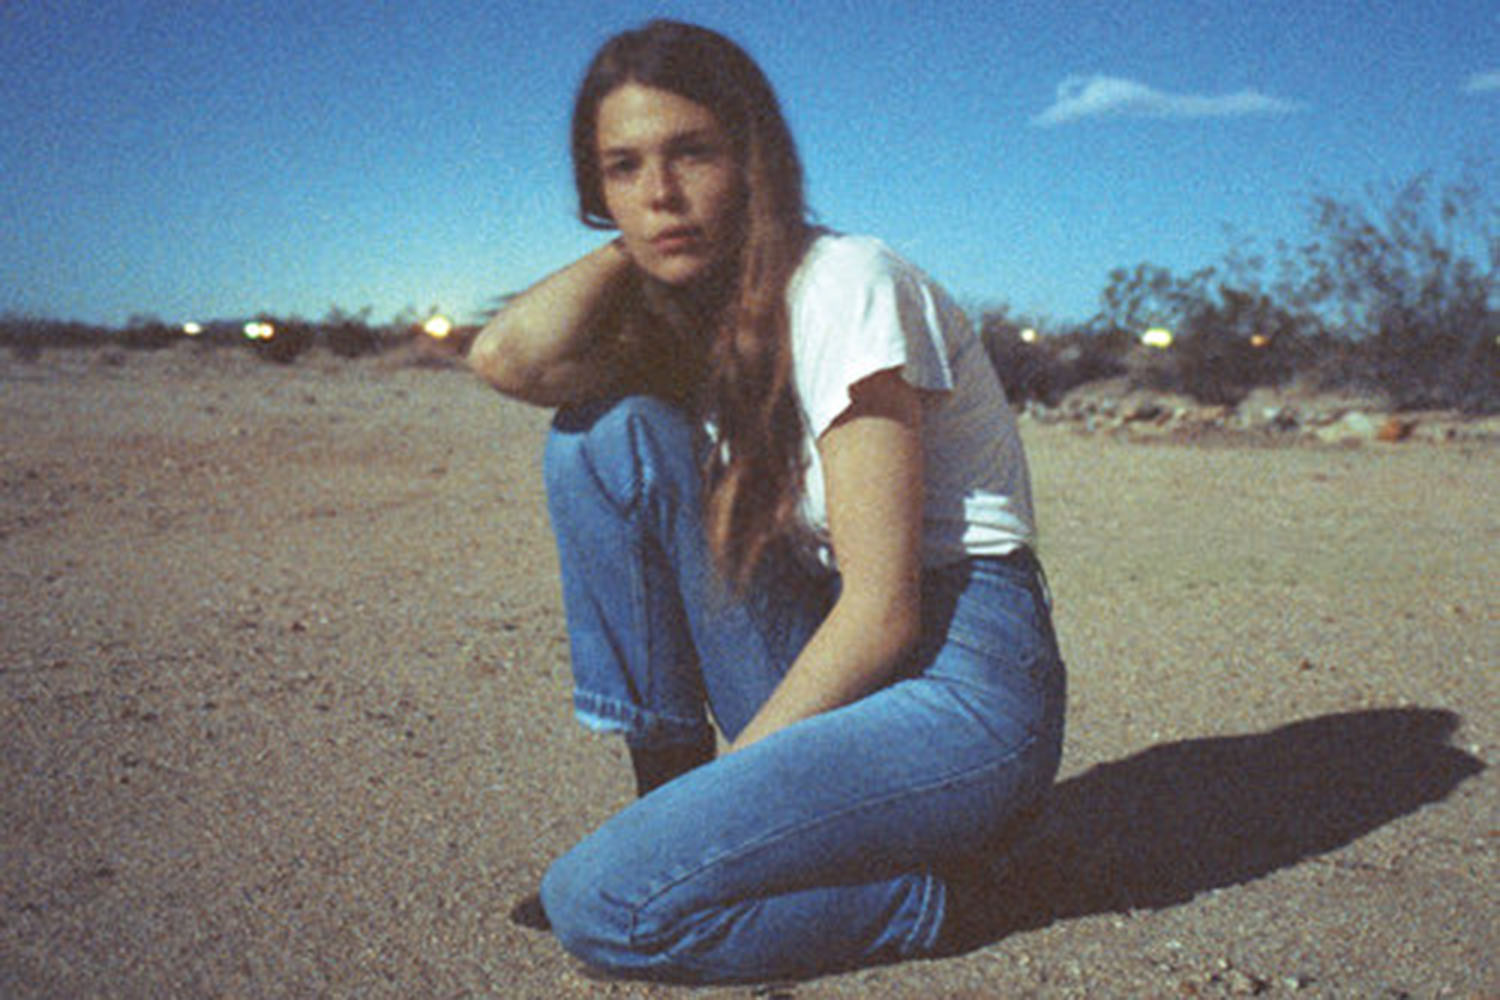 Singer-songwriter Maggie Rogers released her debut album, 'Heard it in a Past Life' on Jan. 18, 2019. The album discusses the emotions surrounding change, and the journey of figuring out who you are.